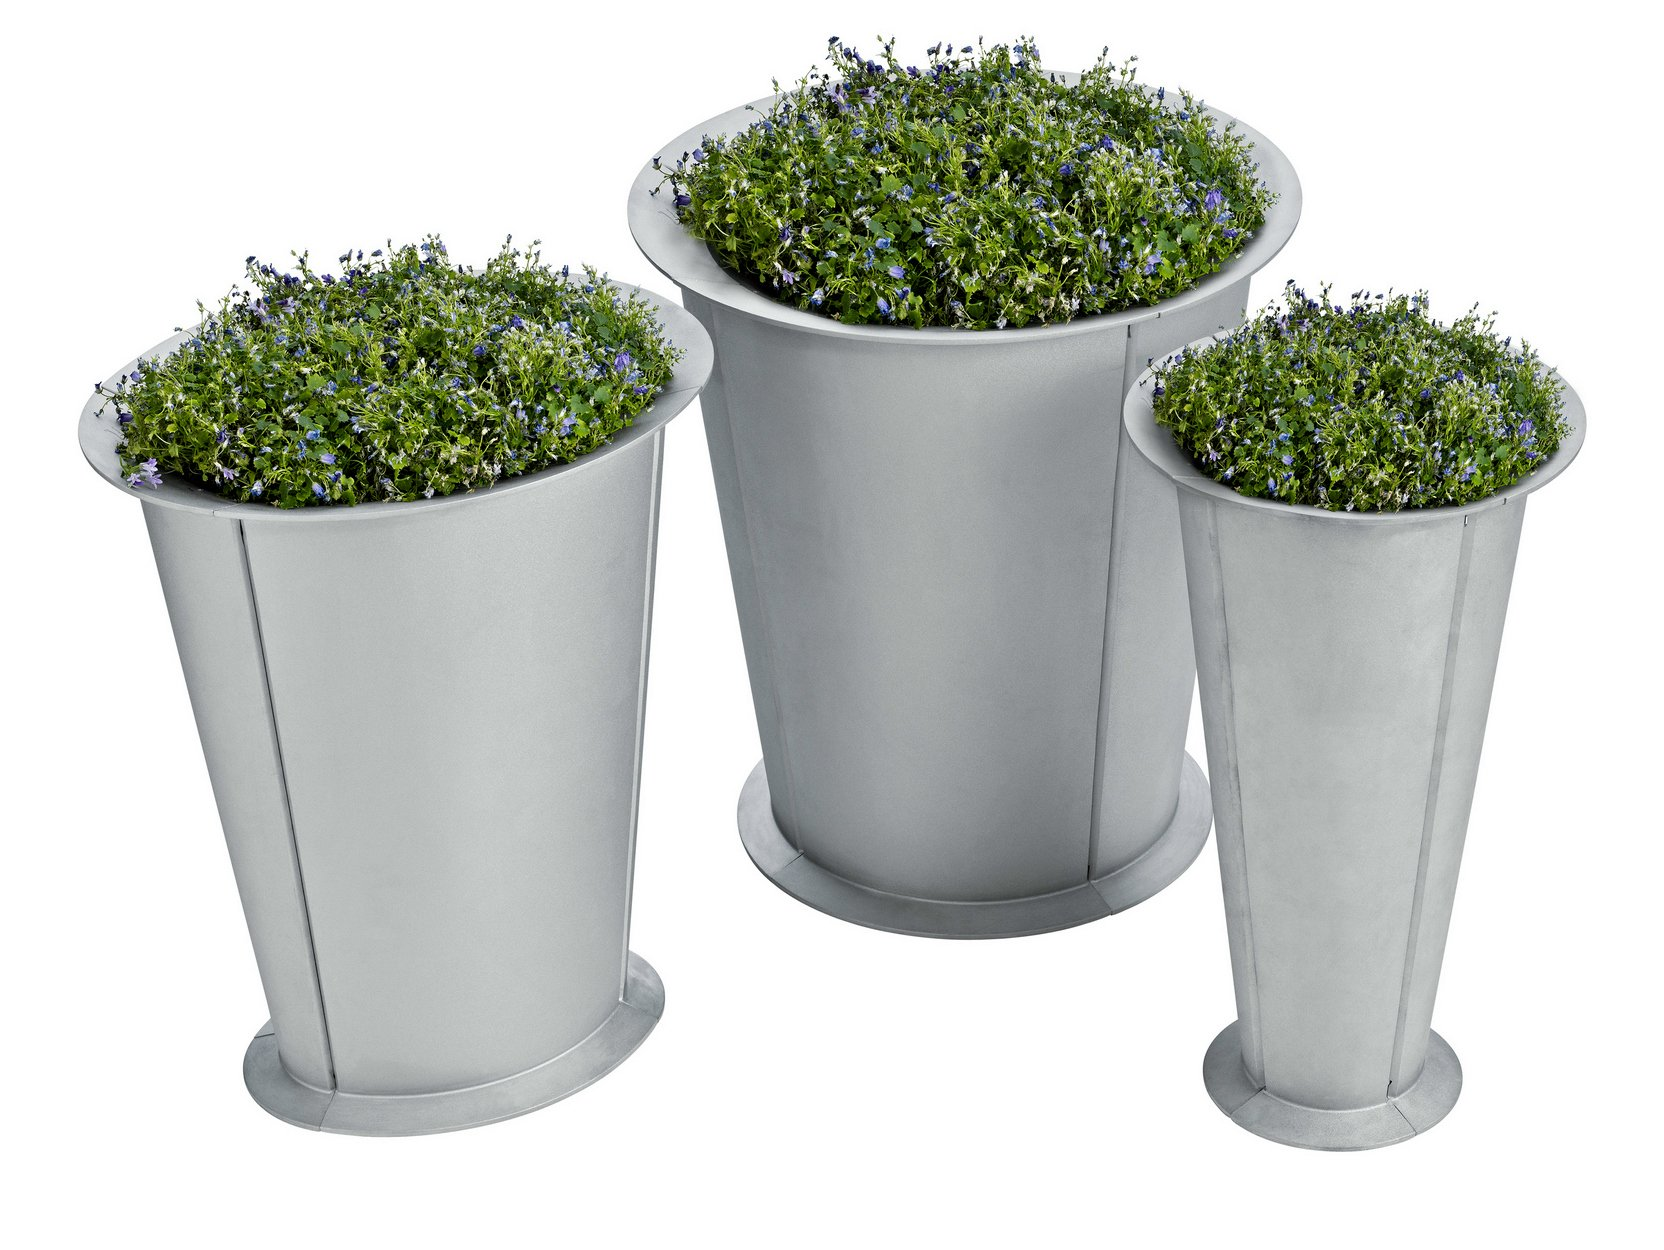 Aluminium Flower Pot Segment By Nola Industrier Design